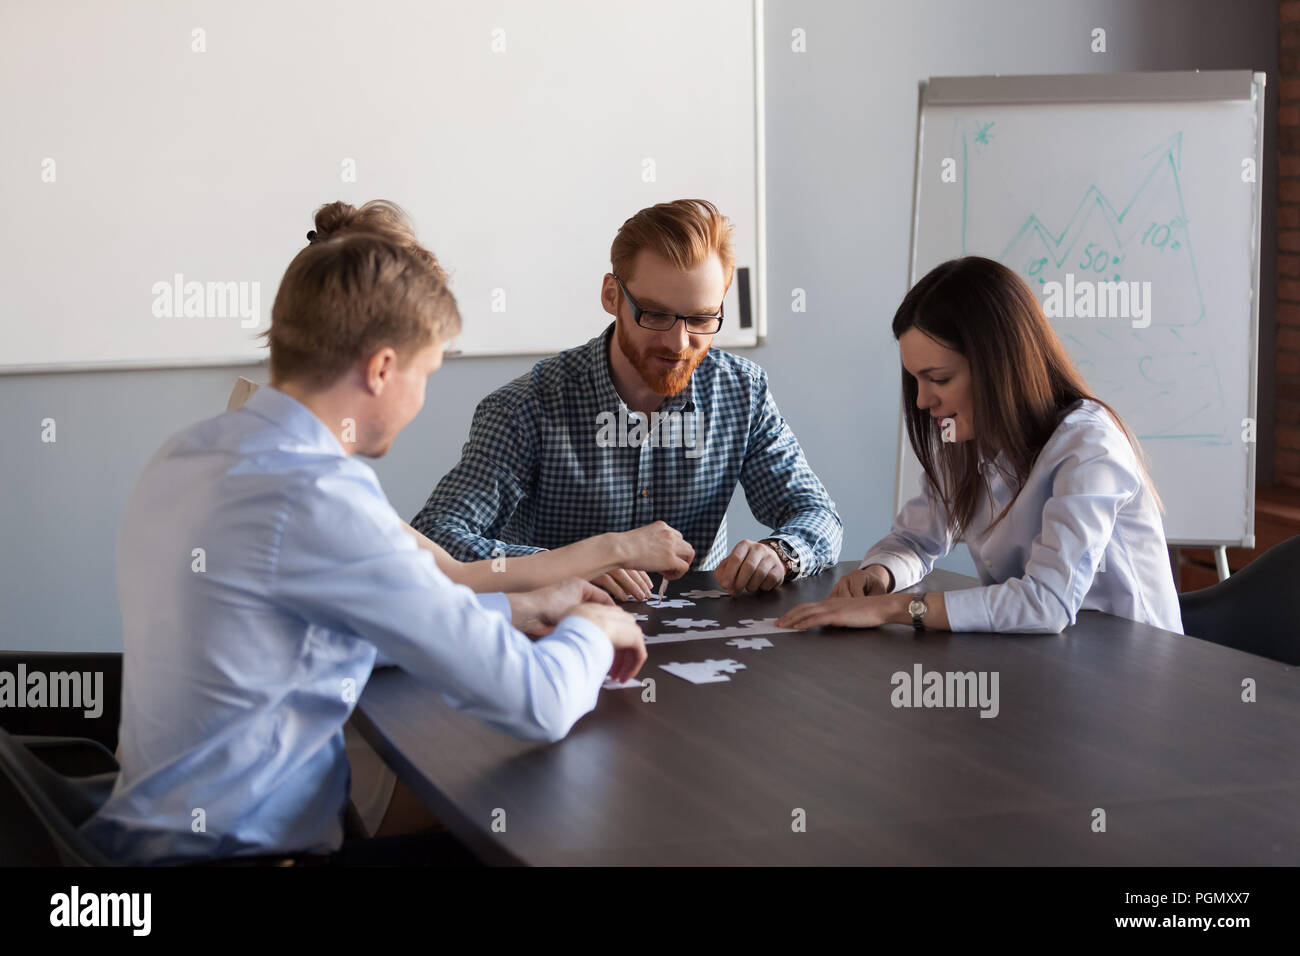 Employees assembling jigsaw puzzle during business meeting - Stock Image